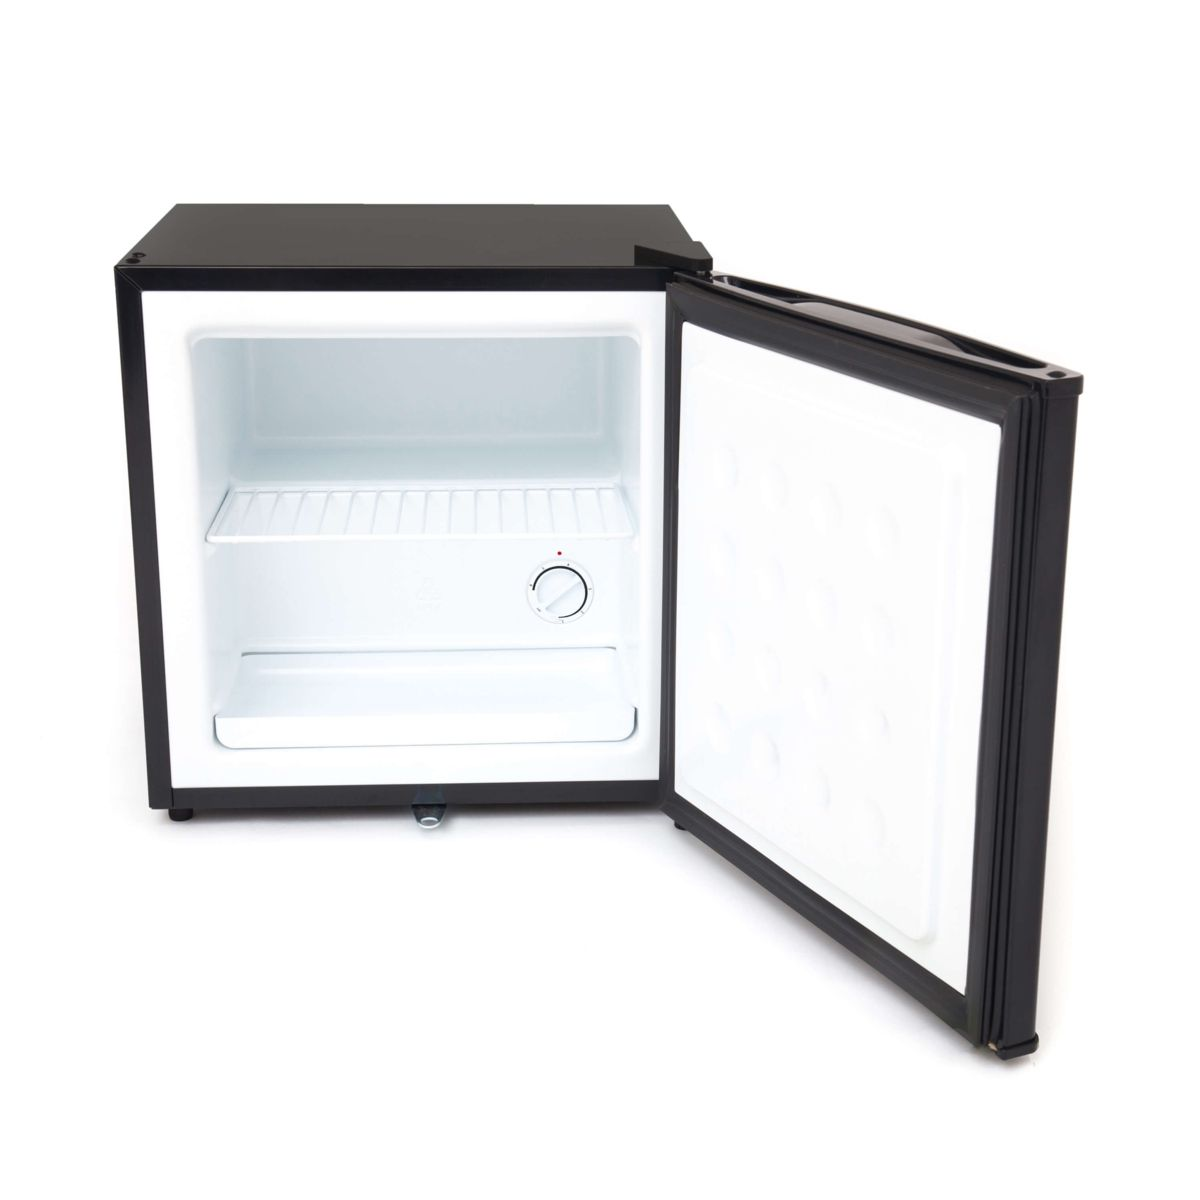 Insulin Mini Fridge Rented by Special Needs Group